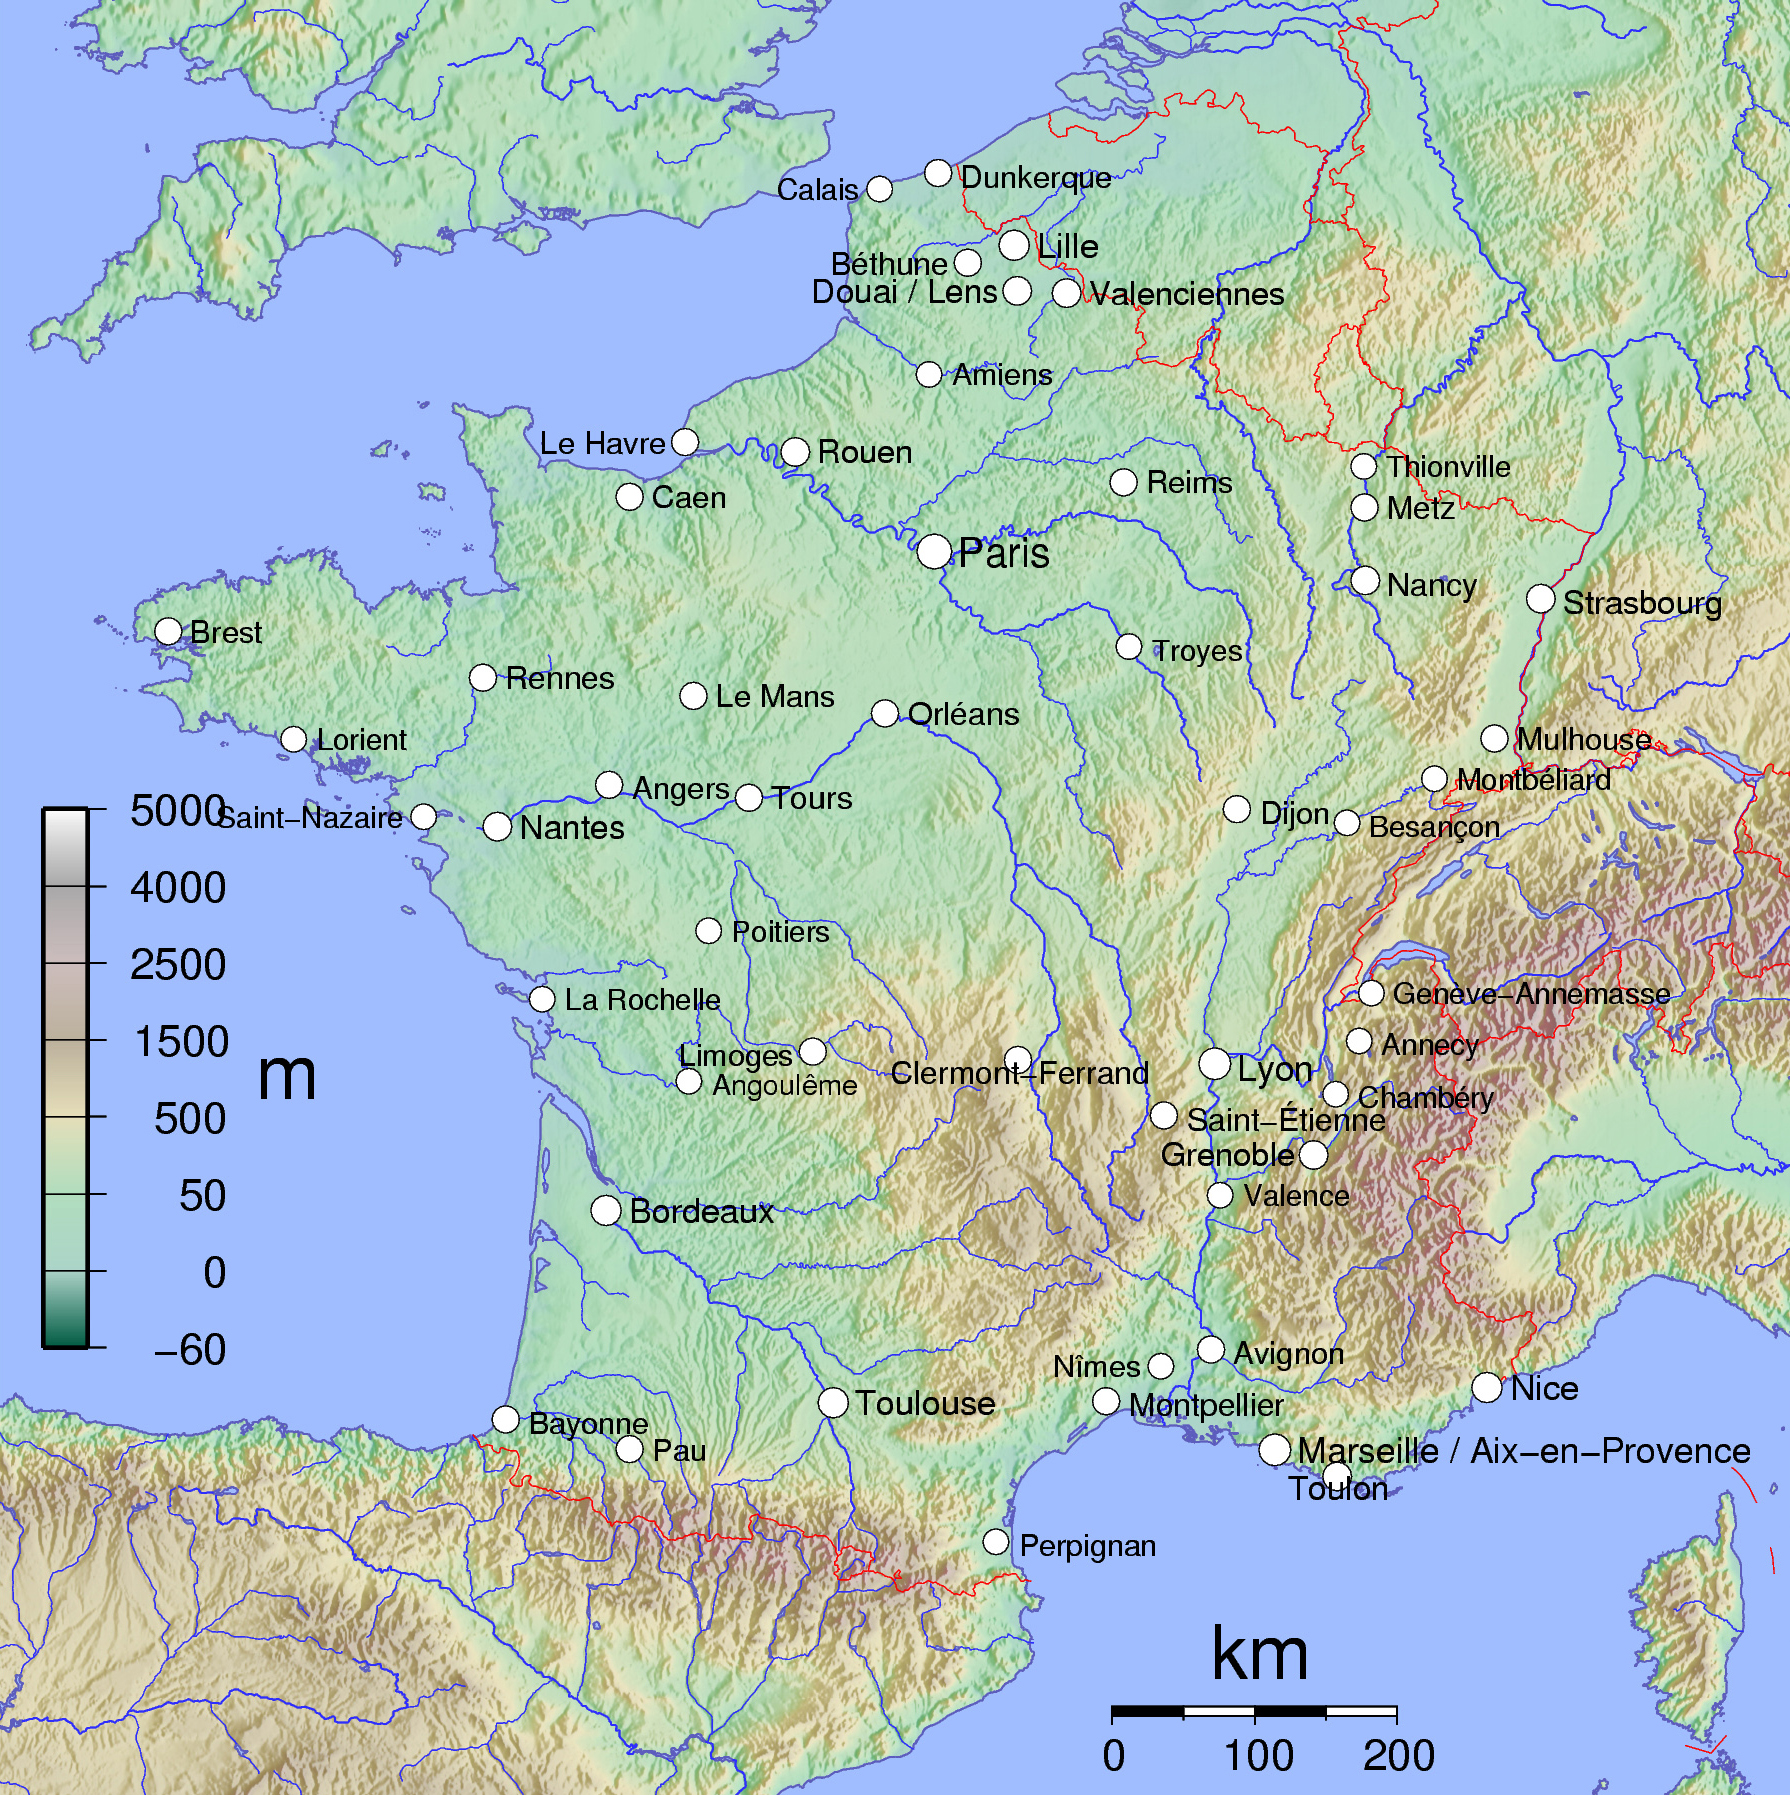 Physical Map Of France Large physical map of France | France | Europe | Mapsland | Maps  Physical Map Of France